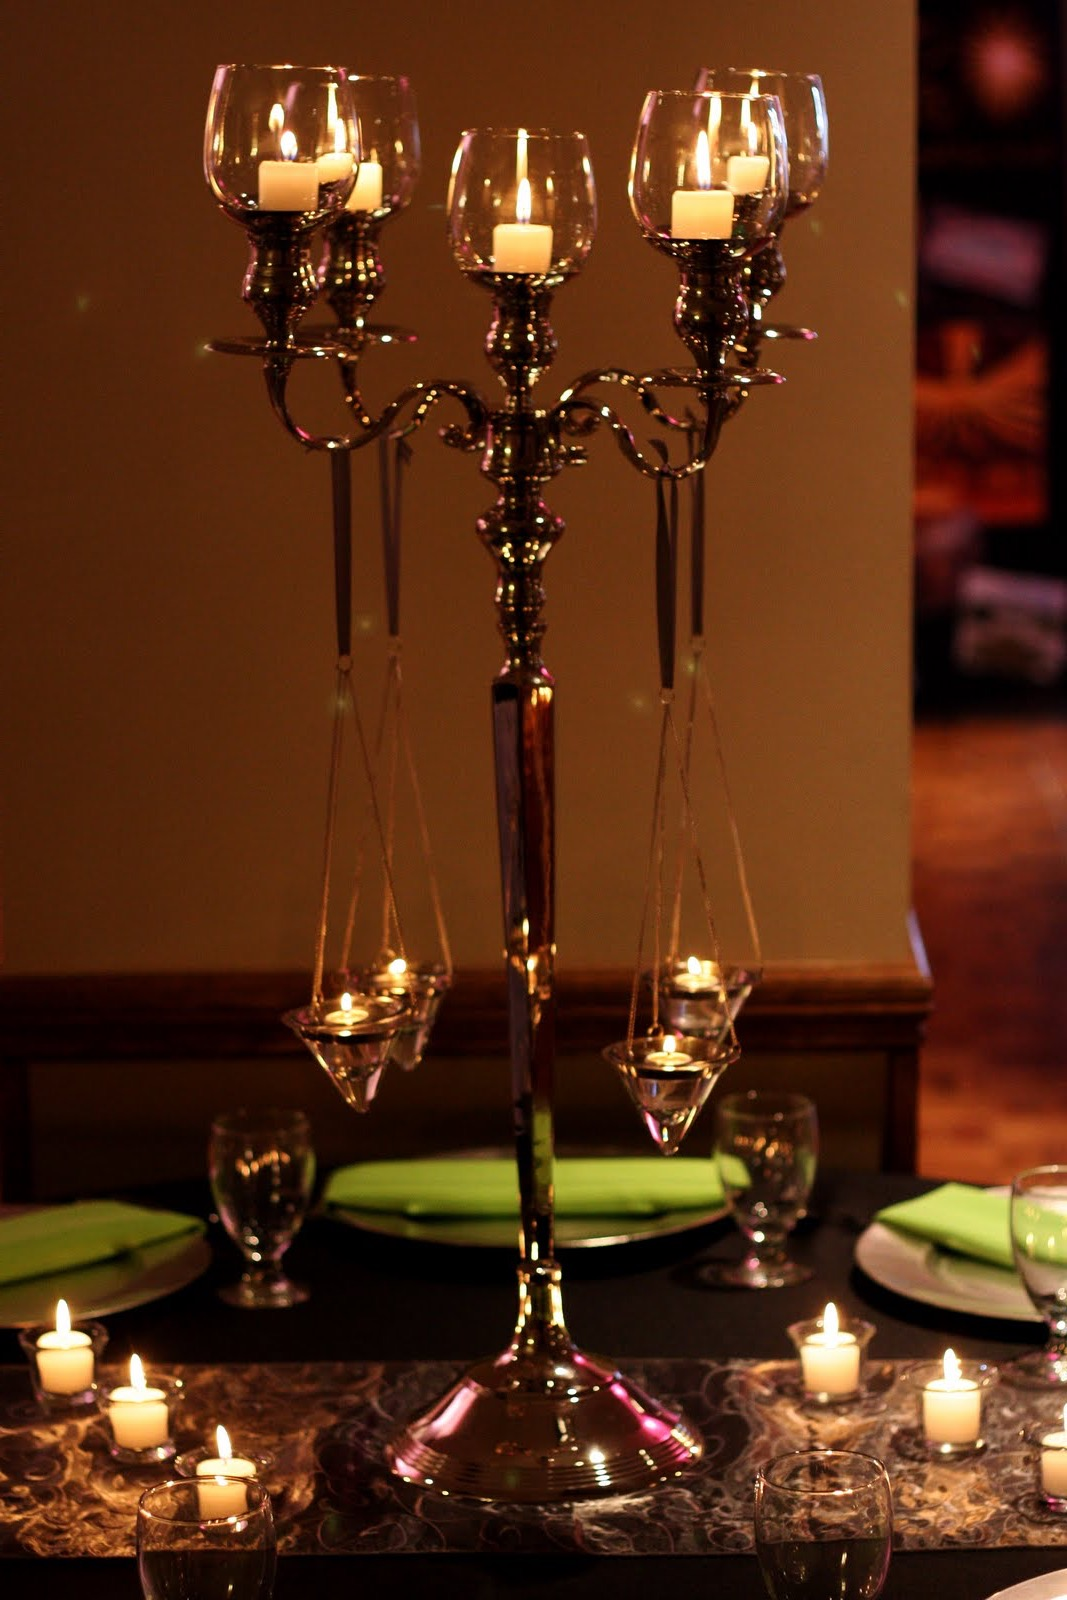 Deluxe High Candelabra Centerpieces For Wedding Table (Image 6 of 12)